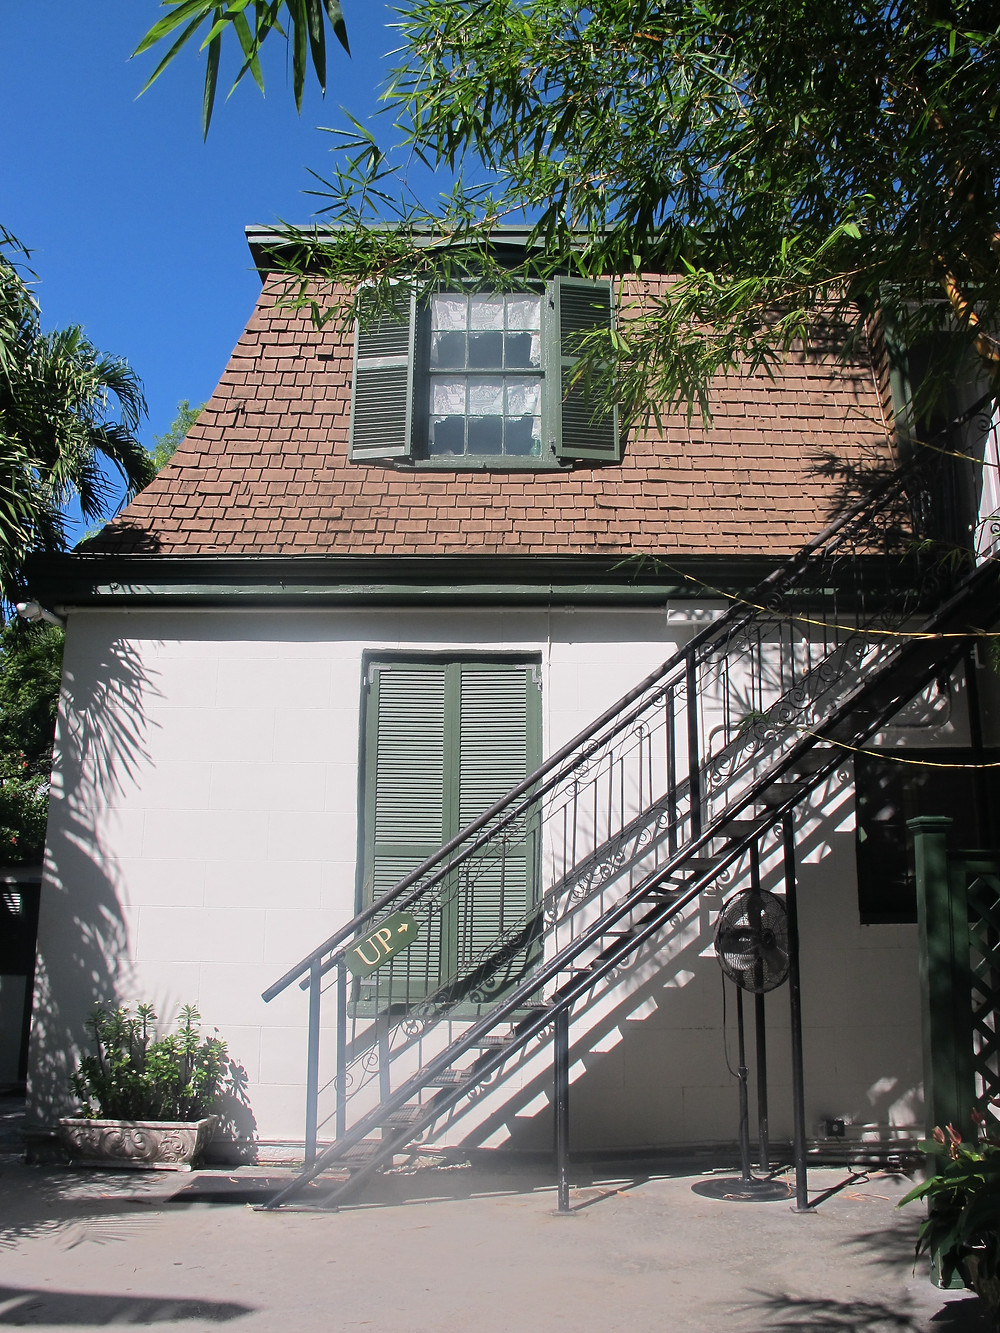 Ernest Hemingway's writing studio in Key West.